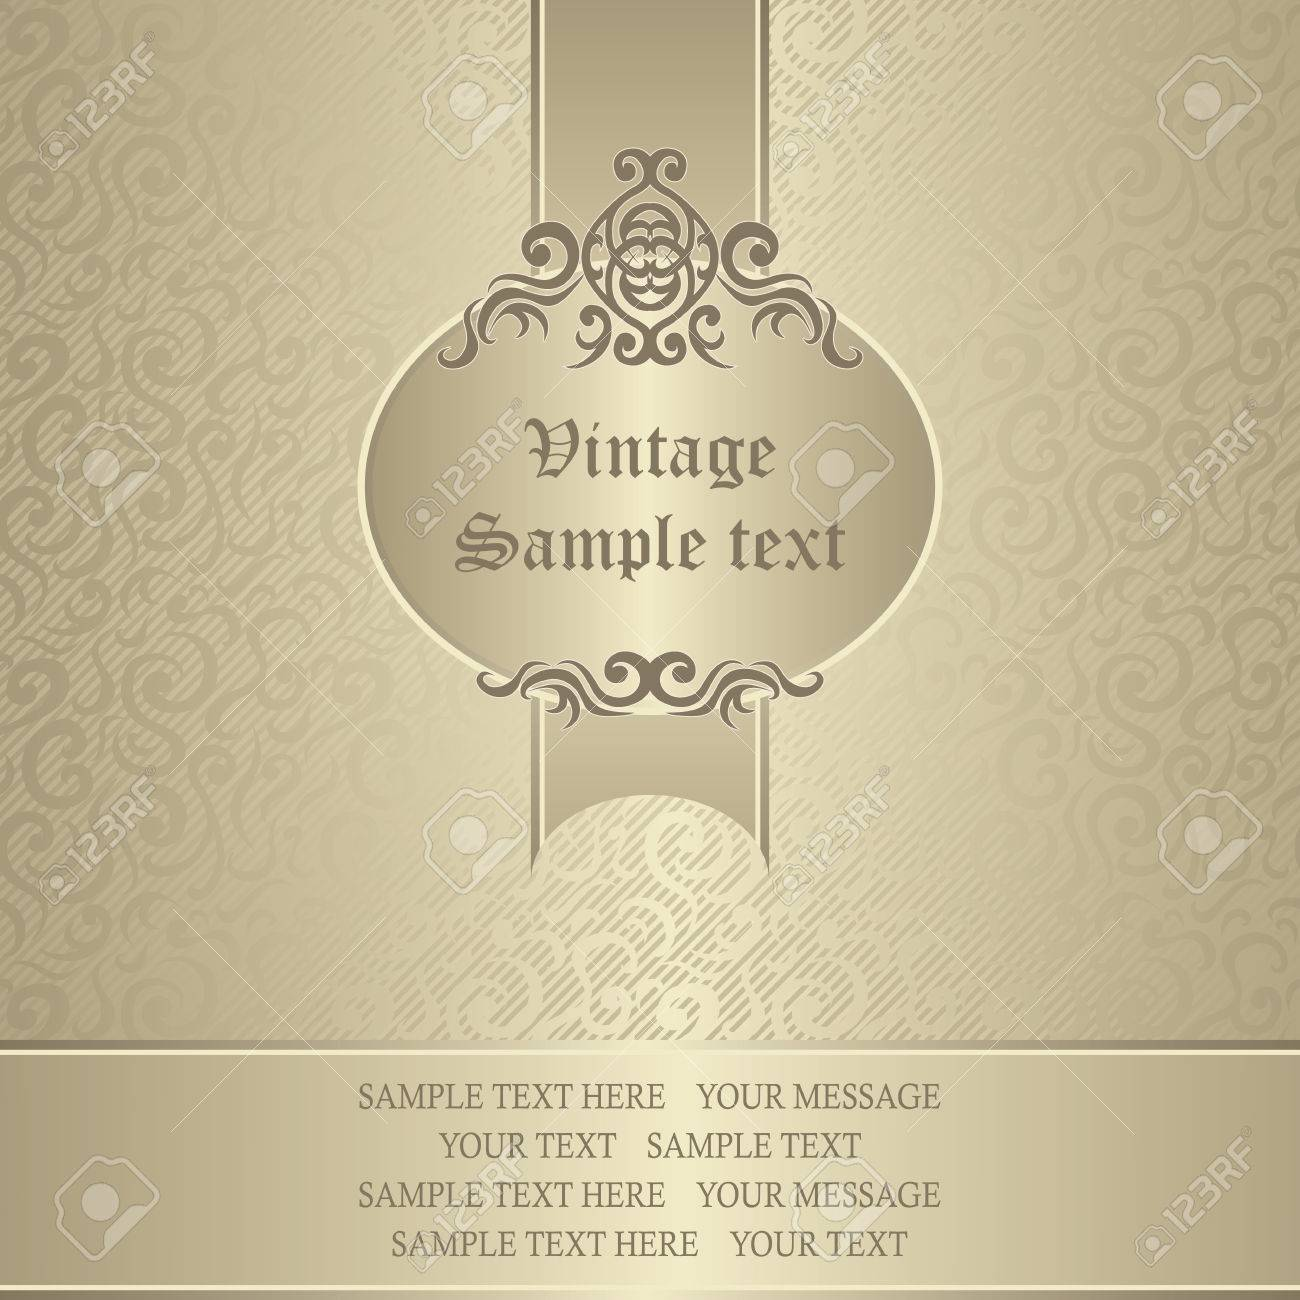 23035891 Wedding invitation in pastel colors Seamless wallpaper Floral background Stock Vector wedding invitation in pastel colors seamless wallpaper floral,Wallpaper For Wedding Invitation